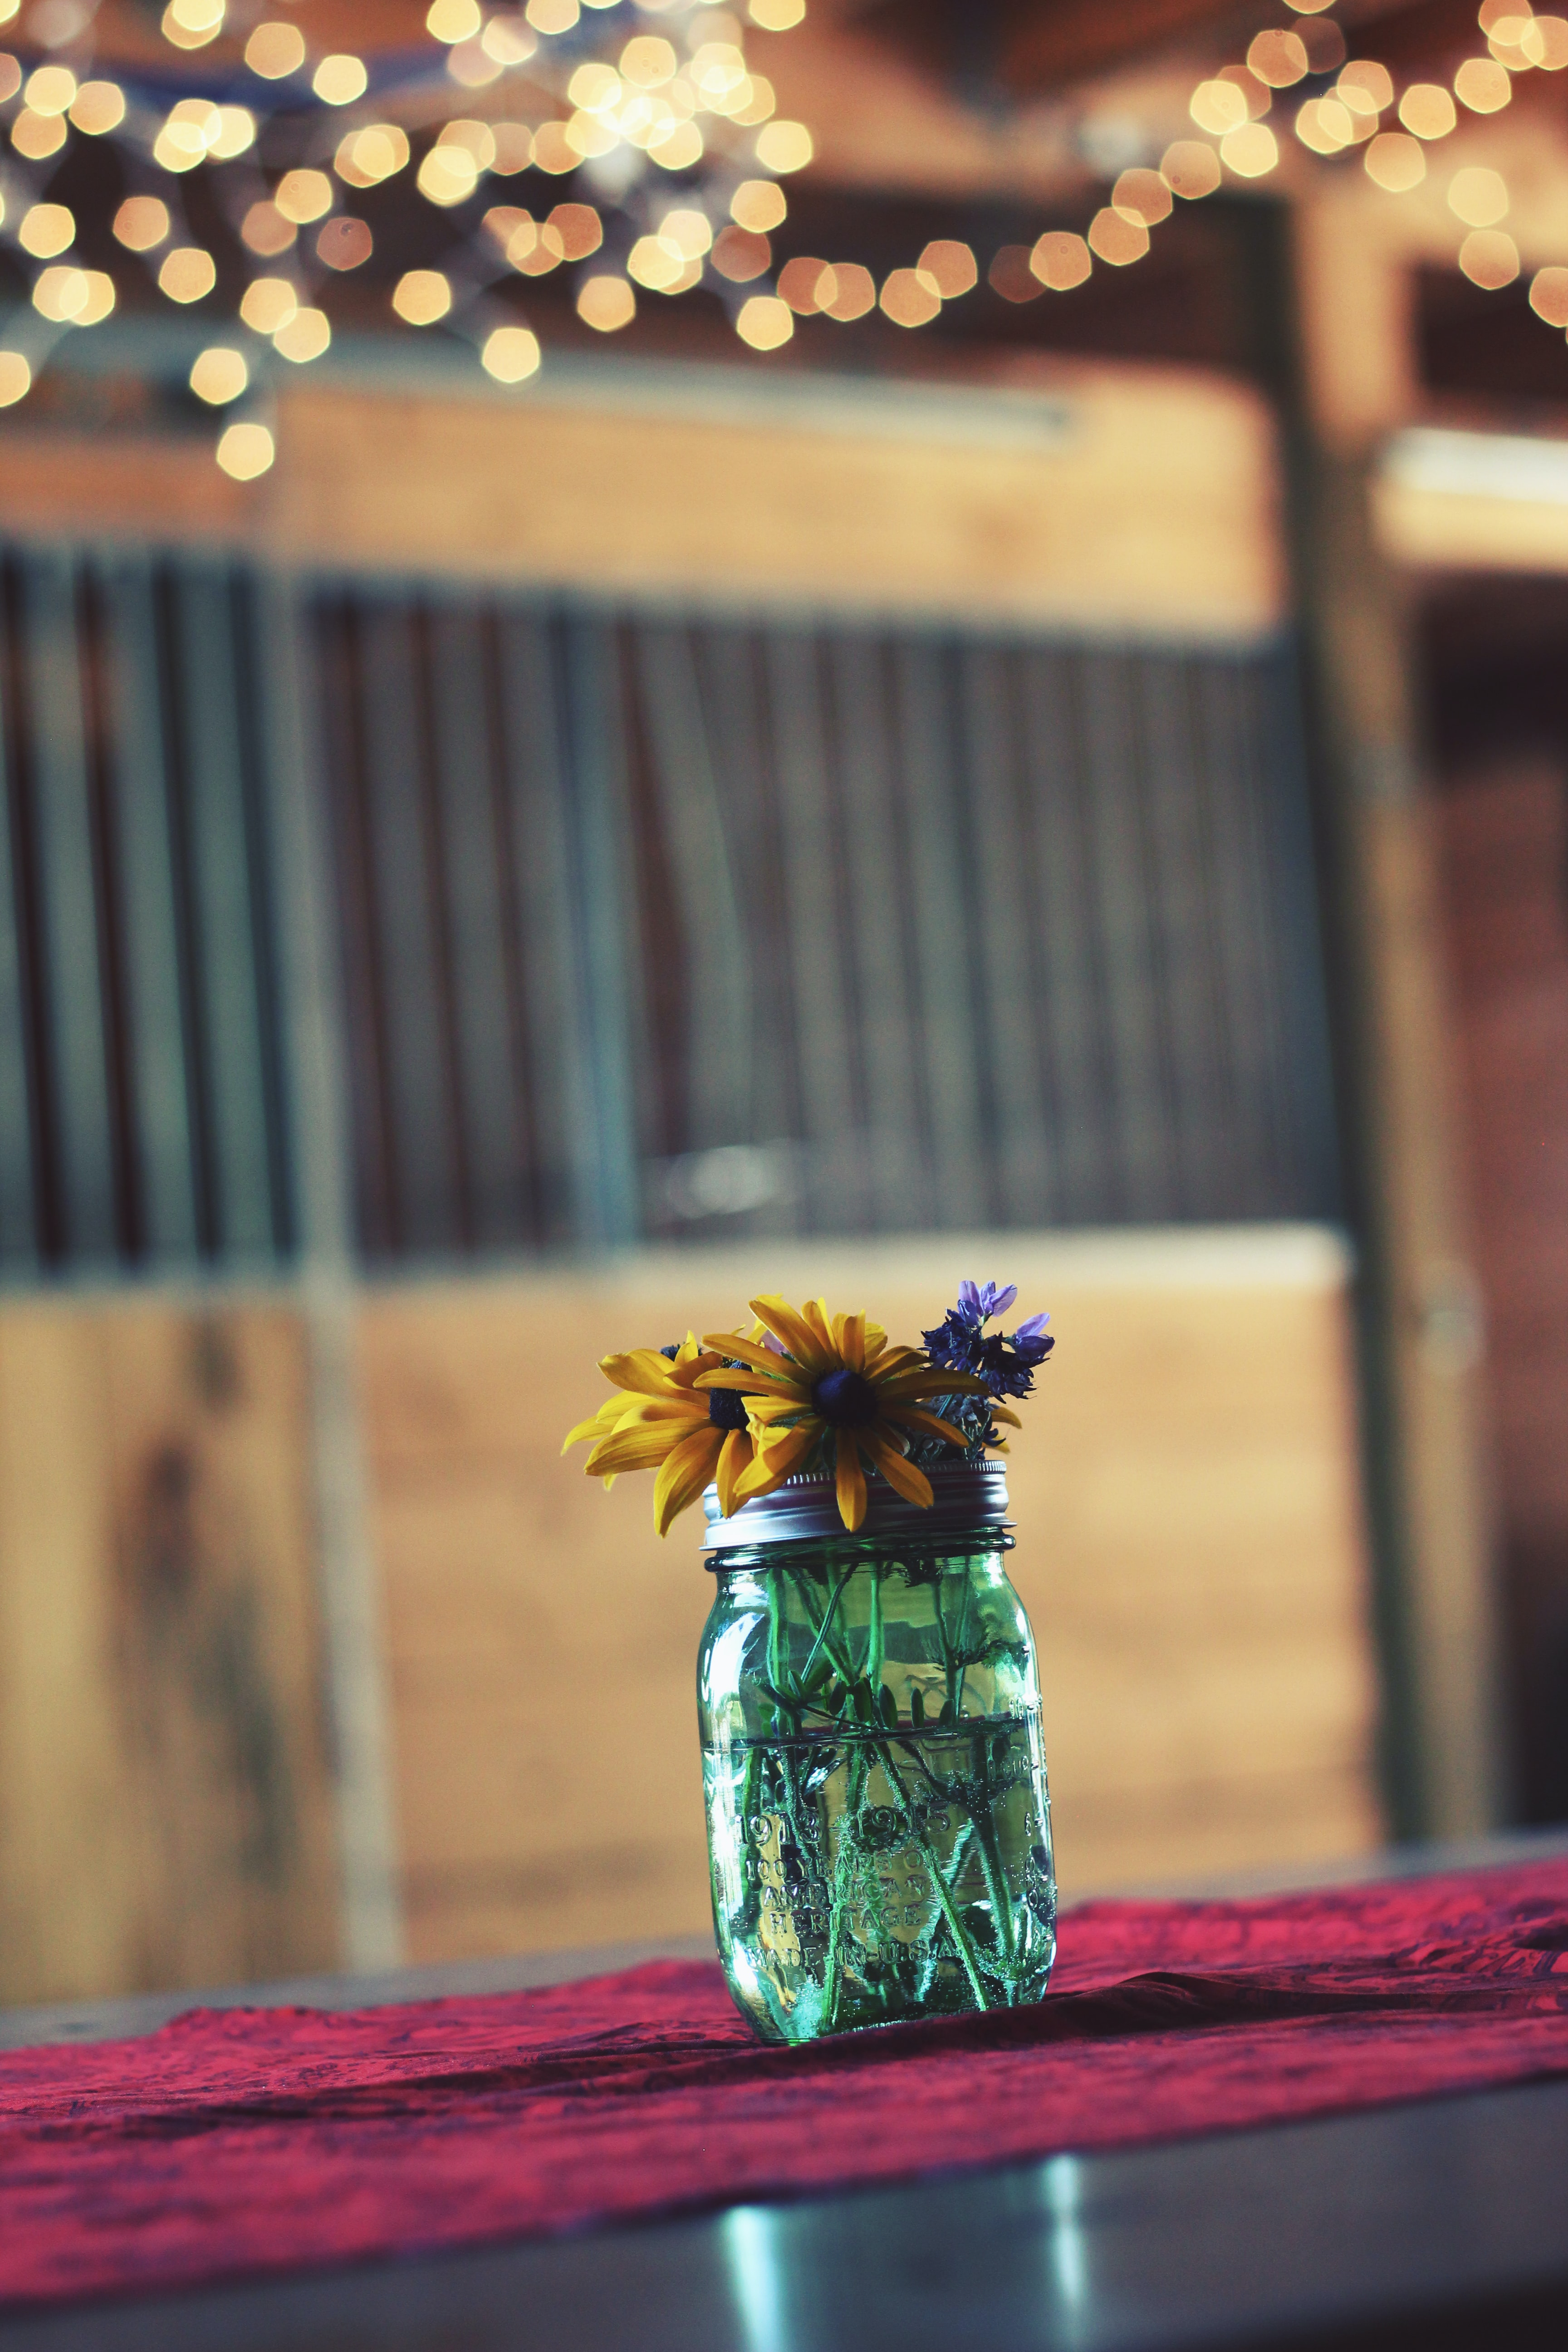 A glass jar with yellow and violet flowers on a wooden surface